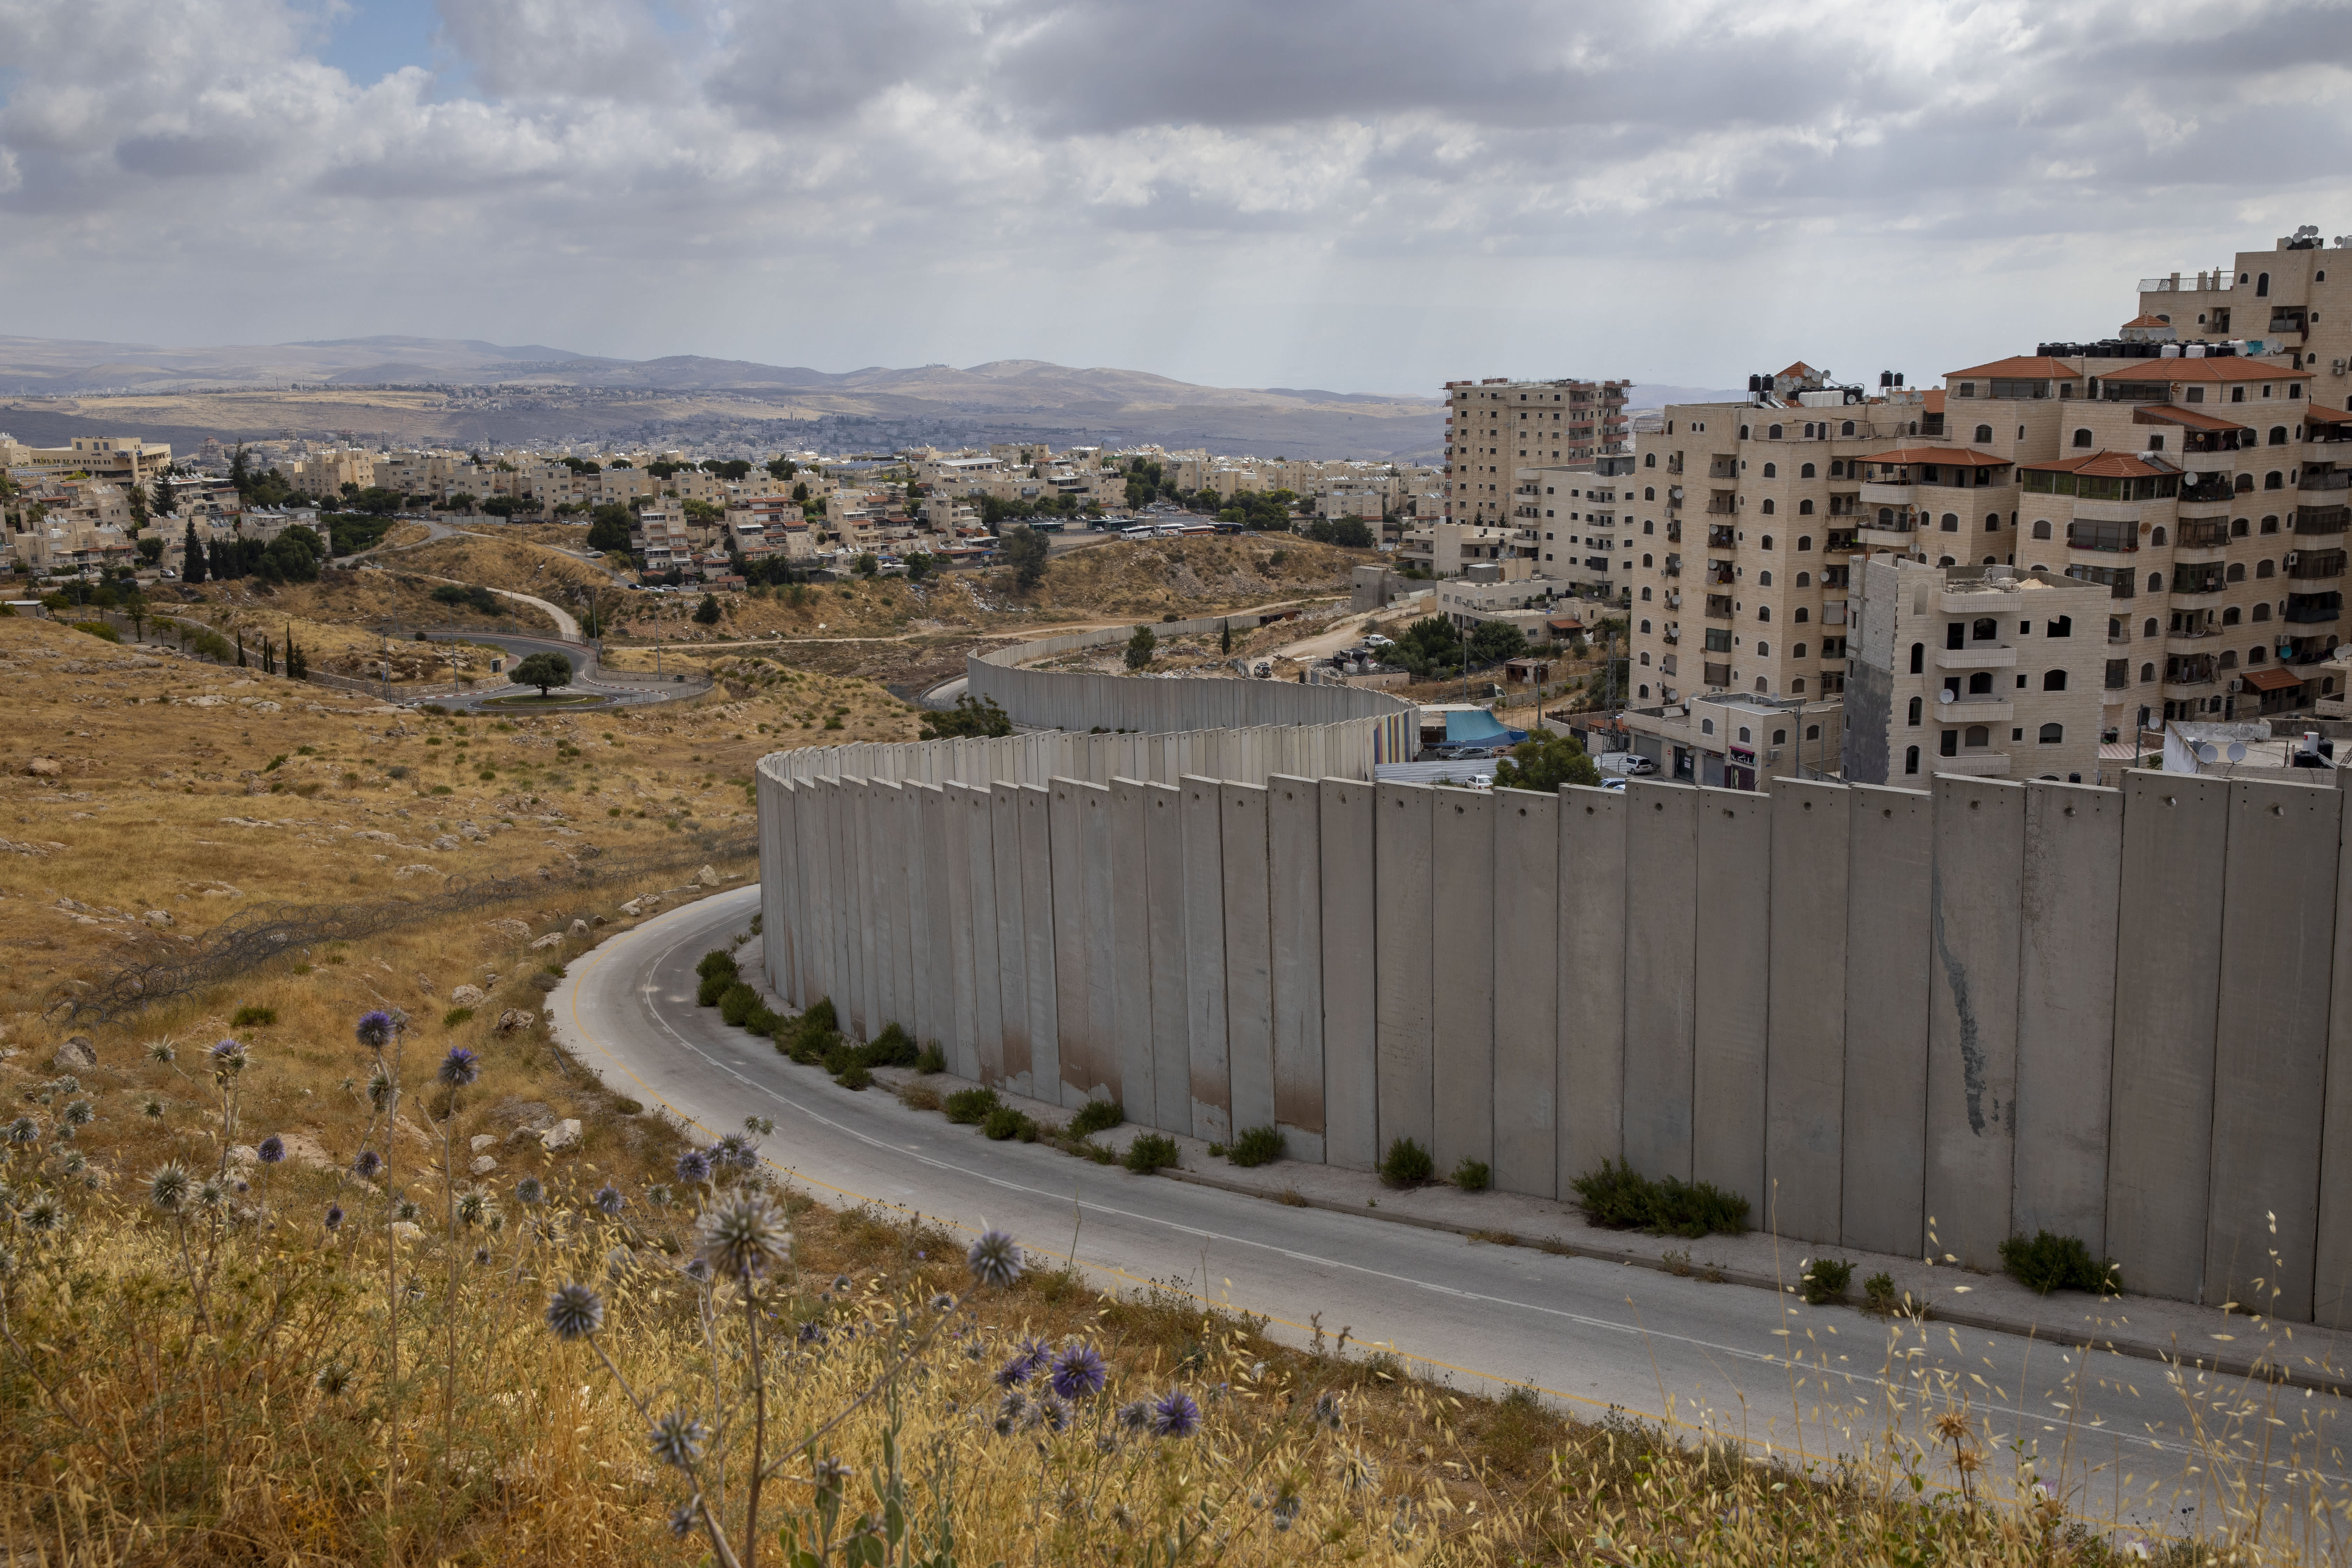 FILE - In this June 19, 2020, file photo, the Shuafat refugee camp is seen behind a section of Israel's separation barrier in Jerusalem. Peter Beinart, an influential American commentator, has shocked the Jewish establishment and Washington policy-making circles by breaking a long-standing taboo: He has endorsed the idea of a democratic entity of Jews and Palestinians living with equal rights between the Jordan River and the Mediterranean. (AP Photo/Oded Balilty, File)